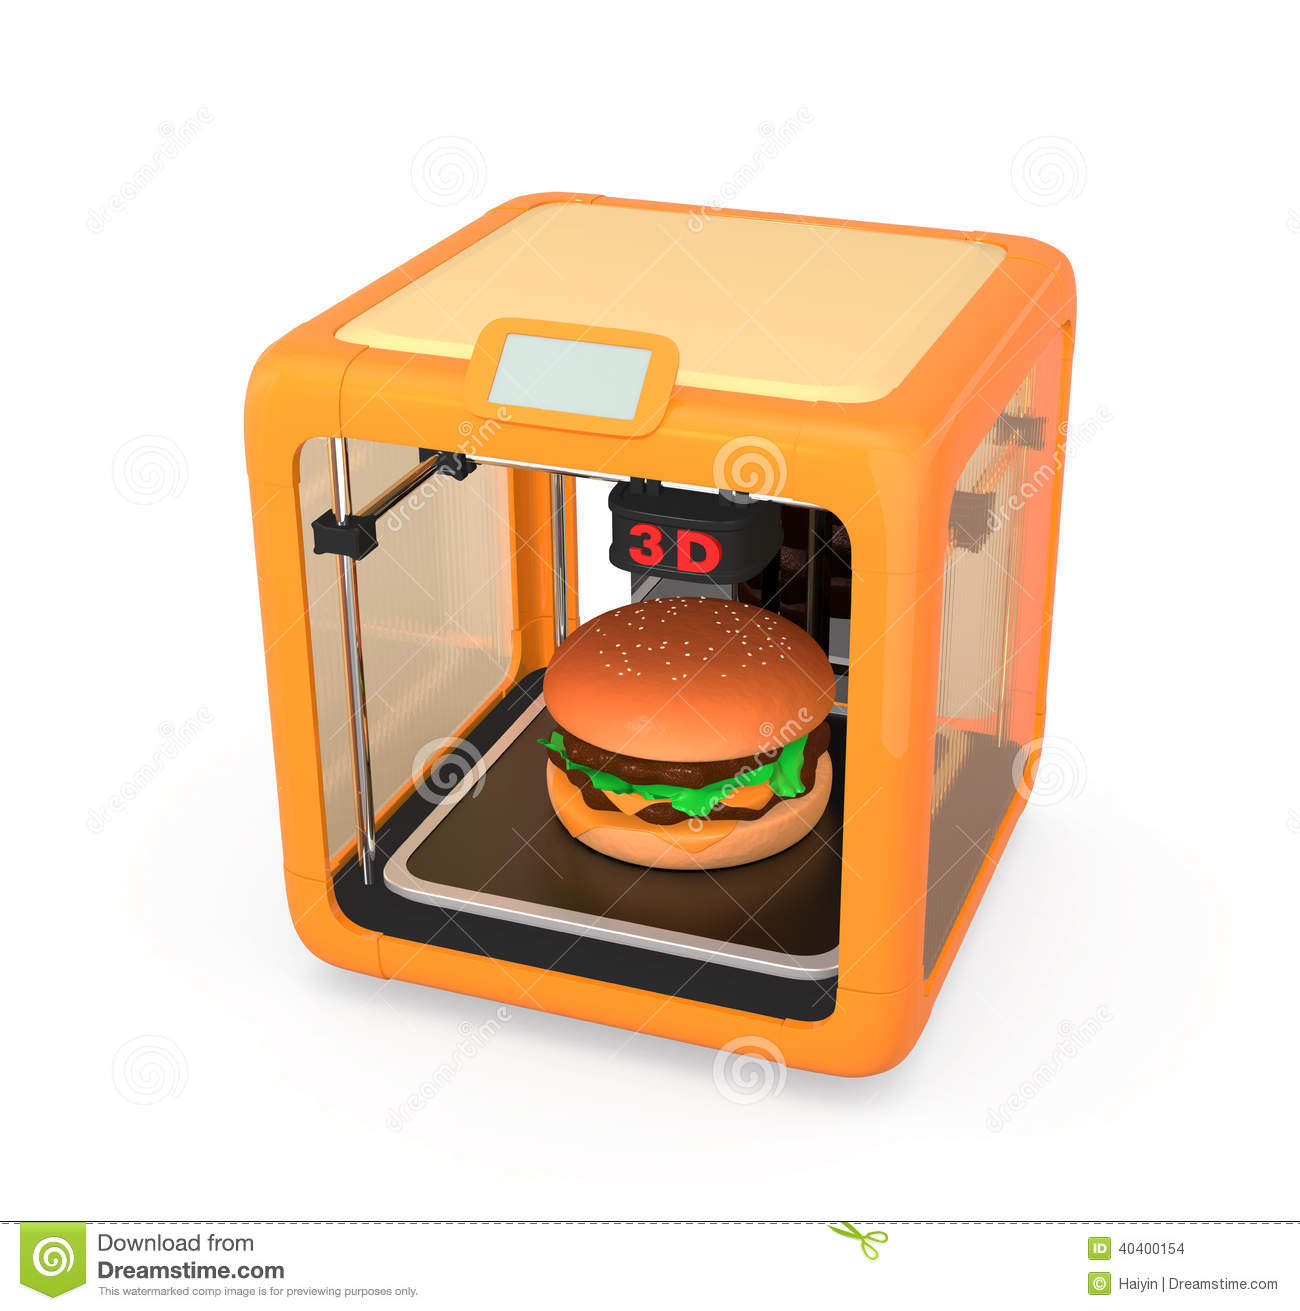 3D Printing Technology For Food Industry Stock Illustration - Image: 40400154